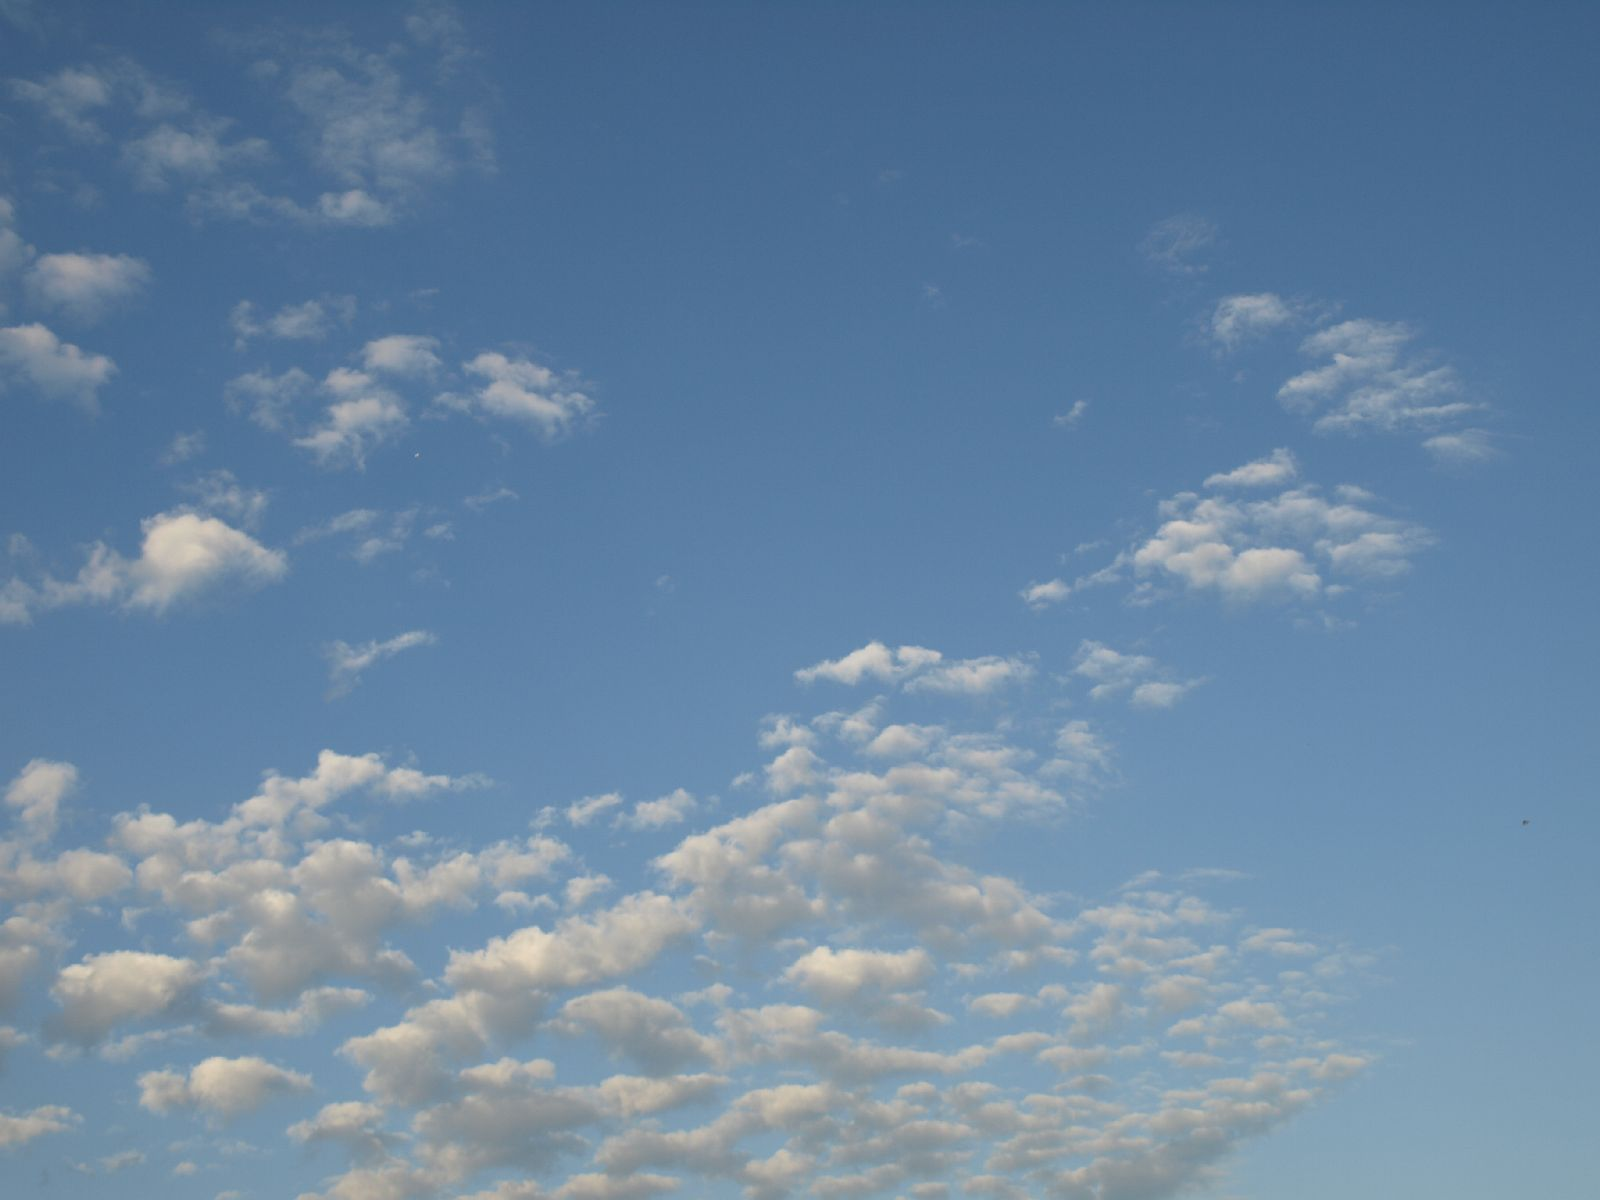 Sky_Clouds_Photo_Texture_A_P6147583